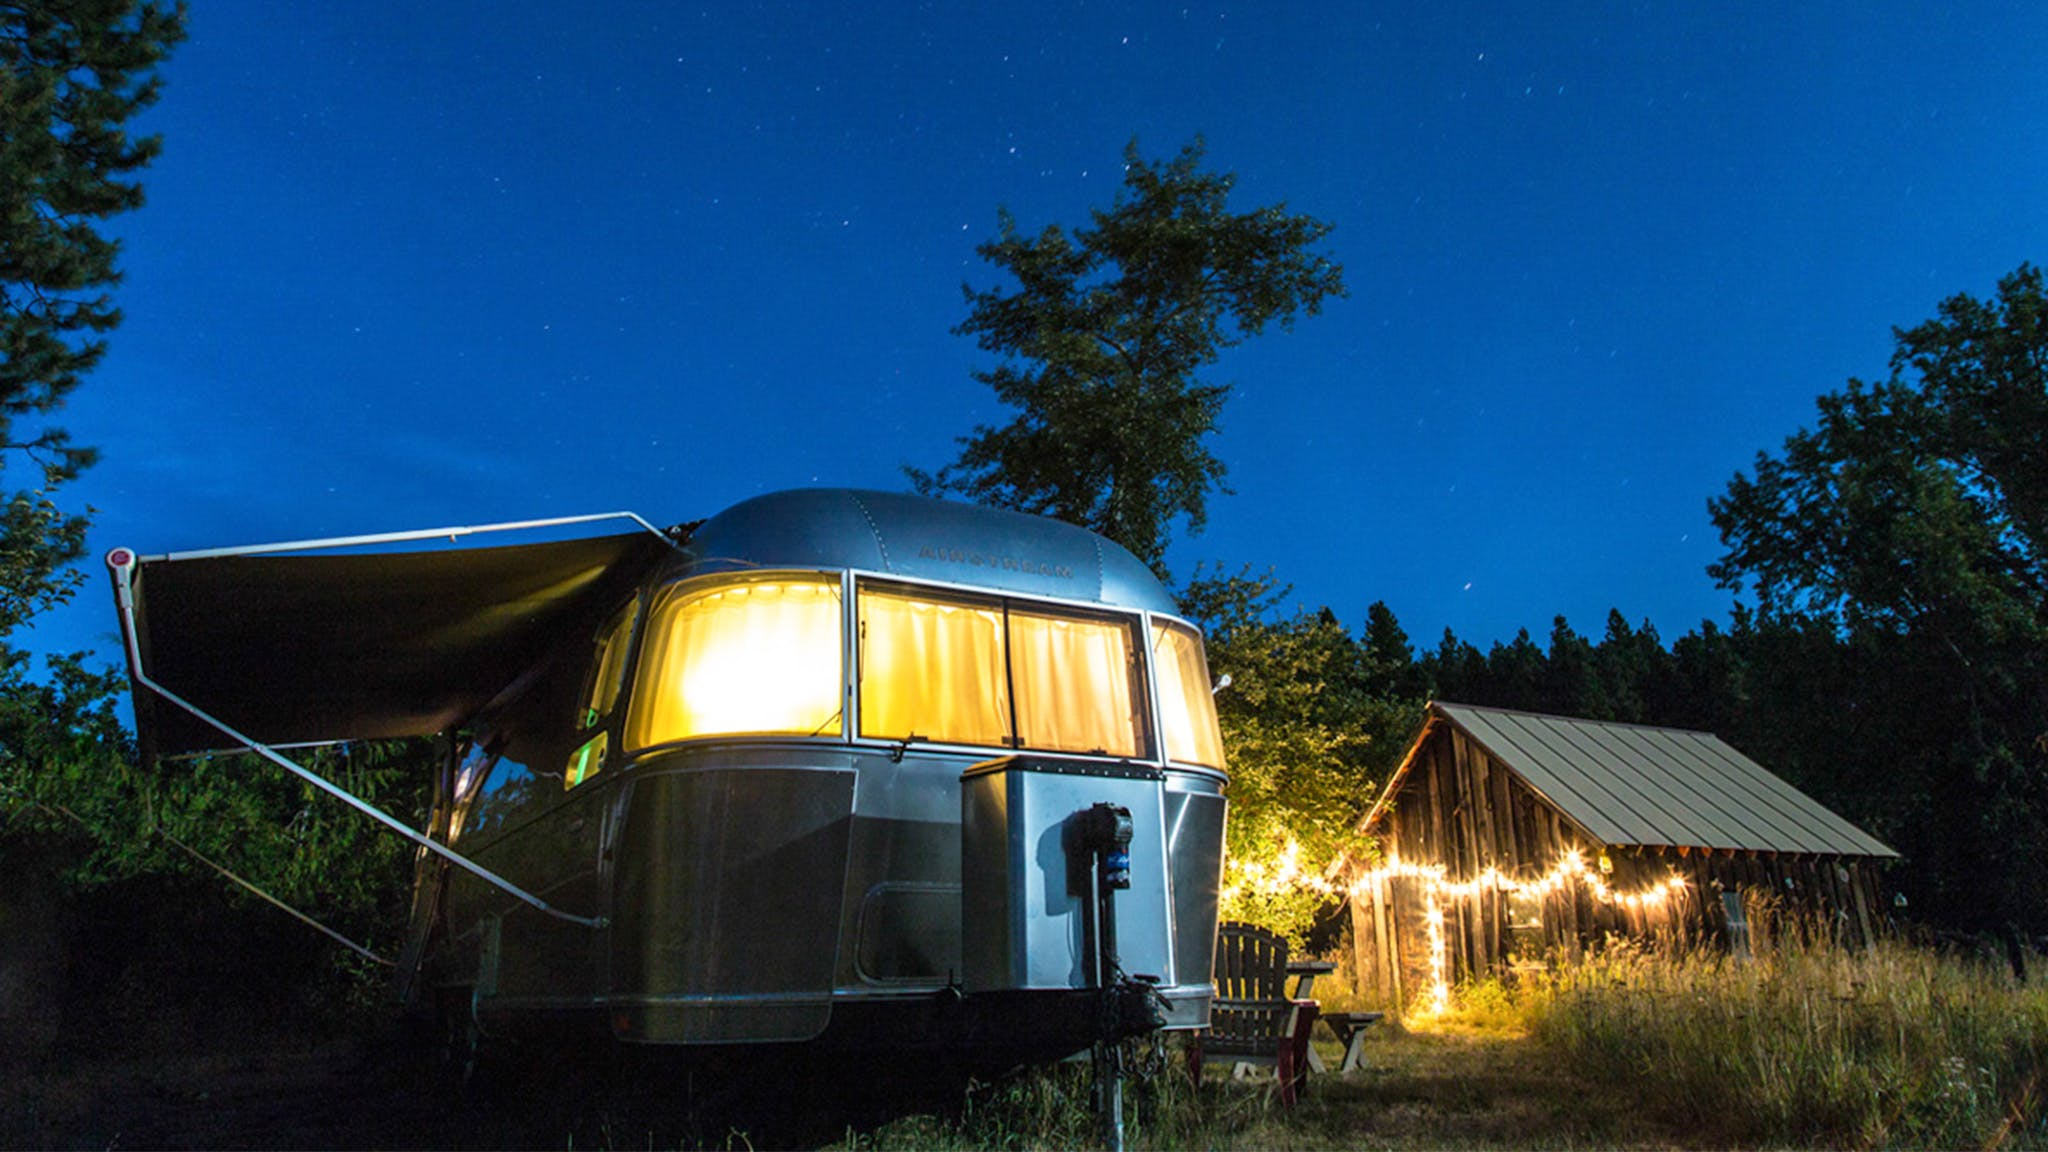 Airstream Travel Trailer with interior lights on